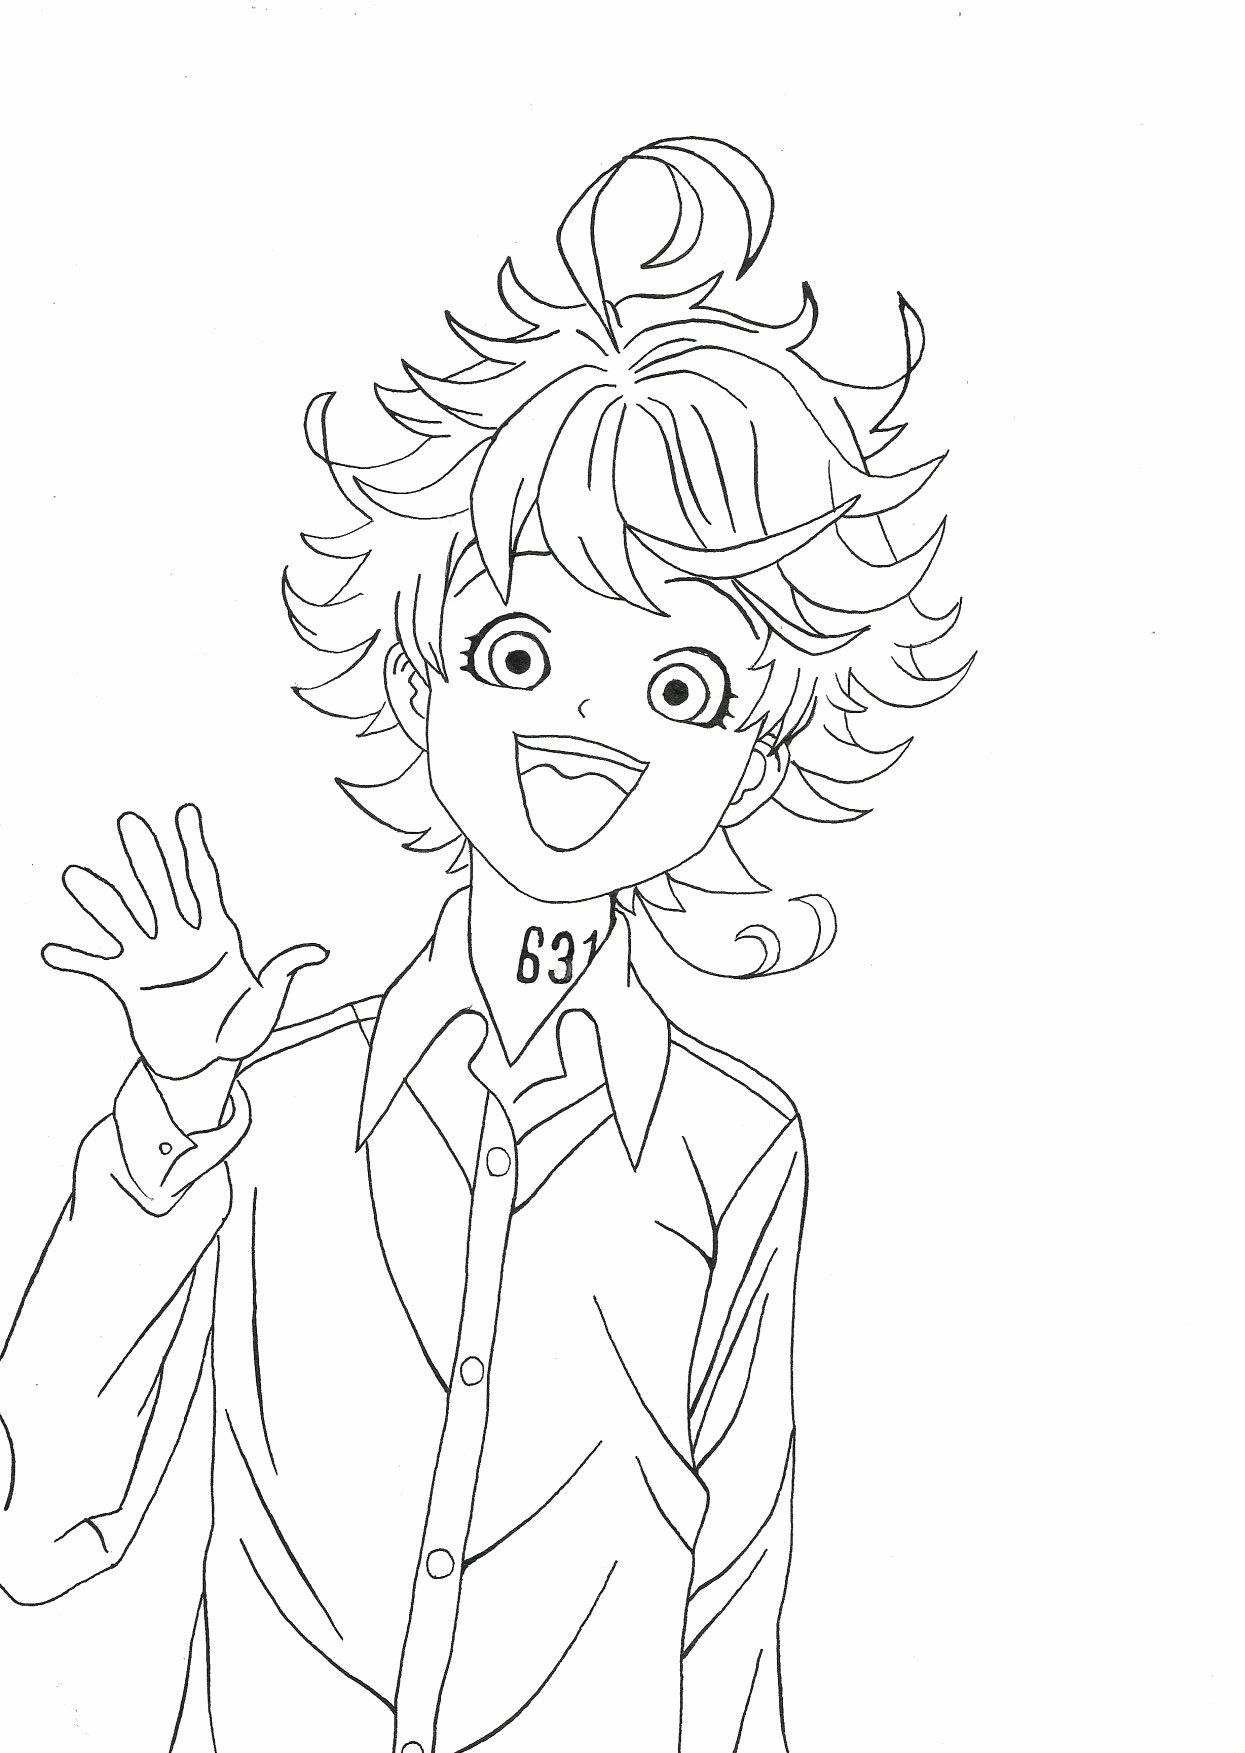 The Promised Neverland Anime Coloring Pages Printable Ideas Of 279 Mejores Imagenes De Colorings P Anime Lineart Anime Character Drawing Anime Character Design [ 1753 x 1245 Pixel ]